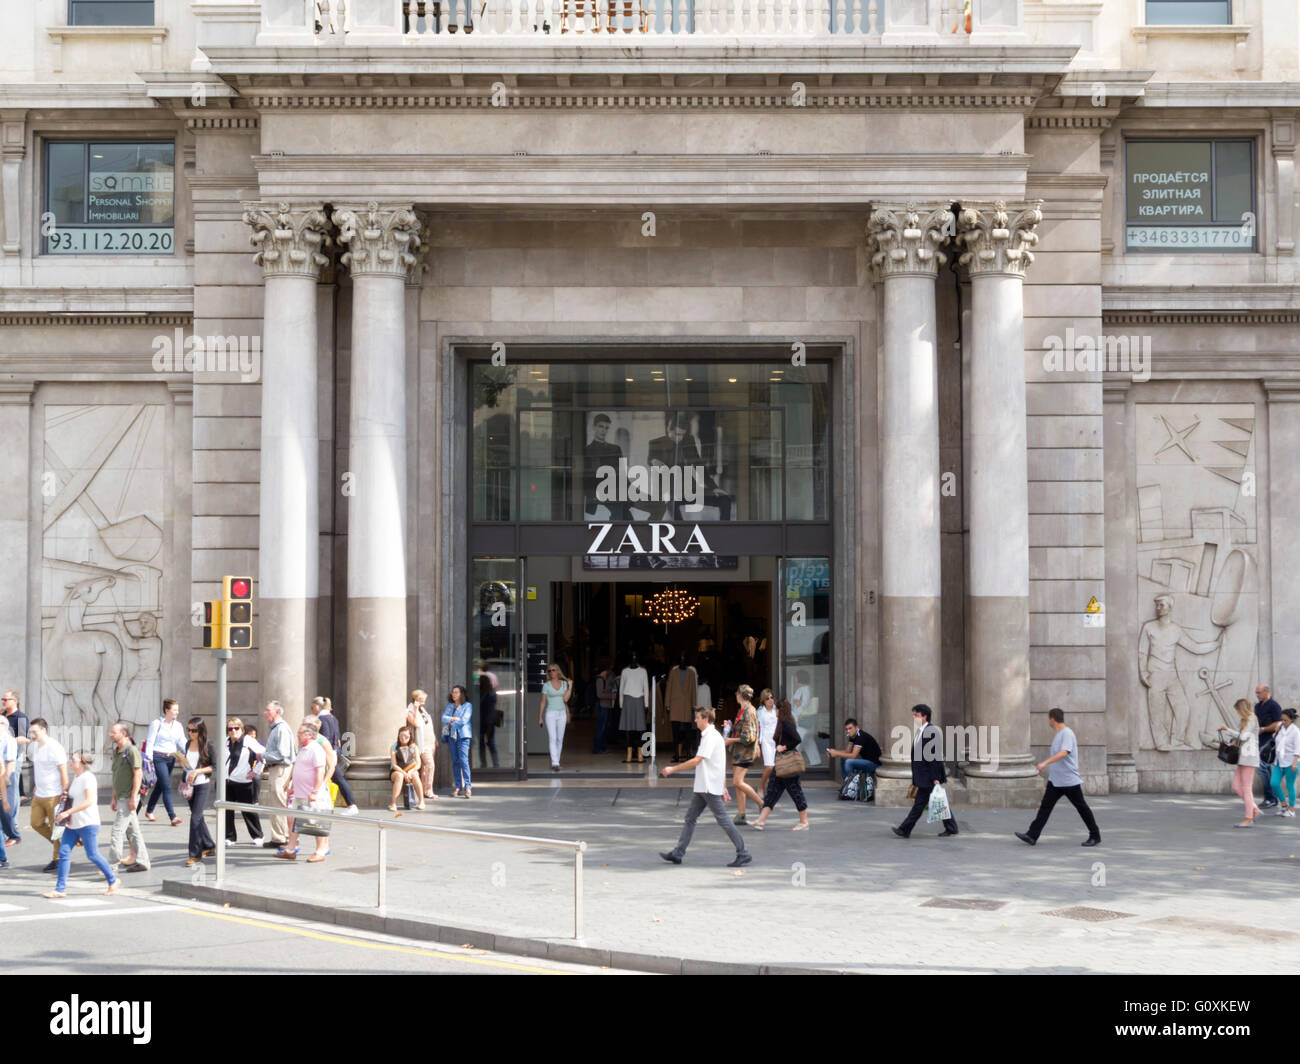 Zara Barcelona Stock Photos   Zara Barcelona Stock Images - Alamy fcf4f7225ec